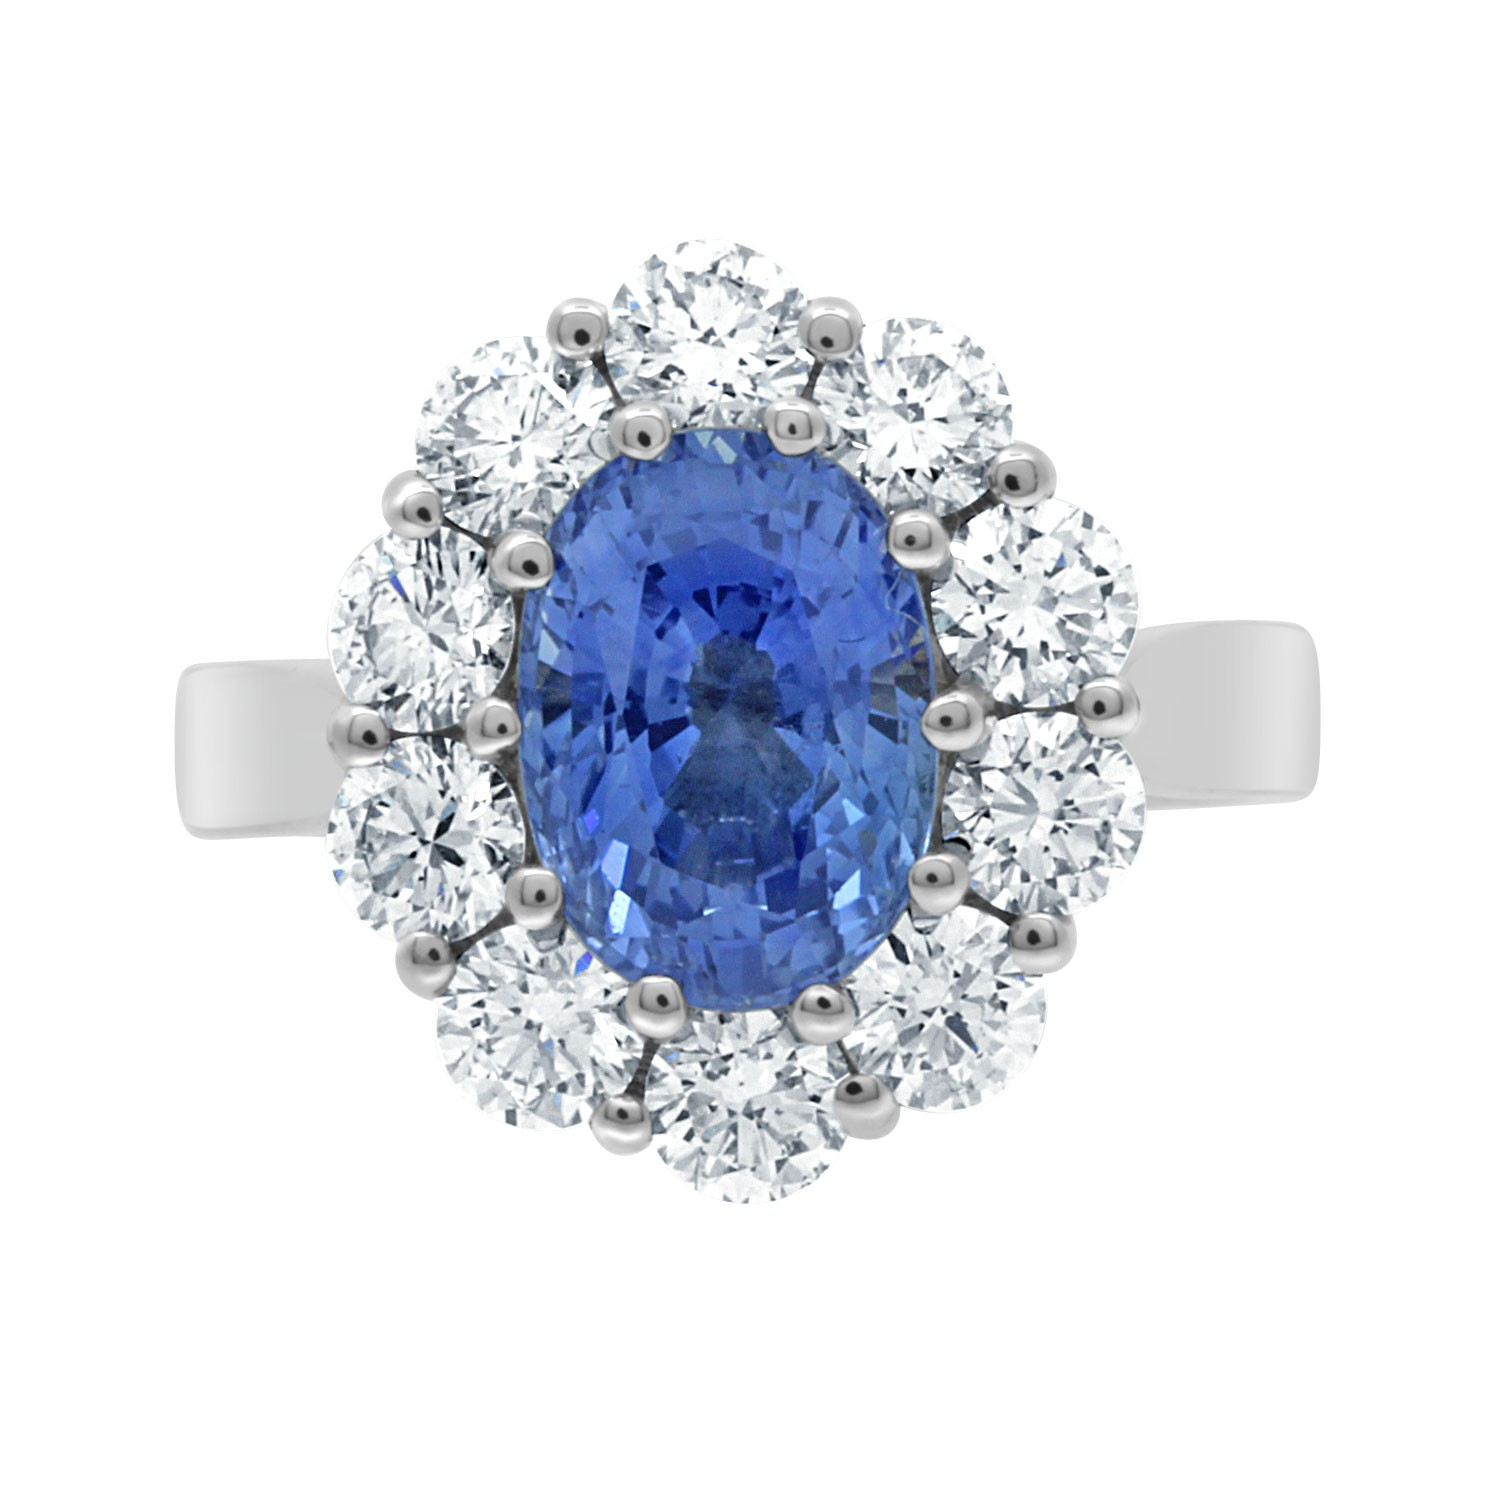 sapphire howard whitney bsrg th designs birthstone september products ring set